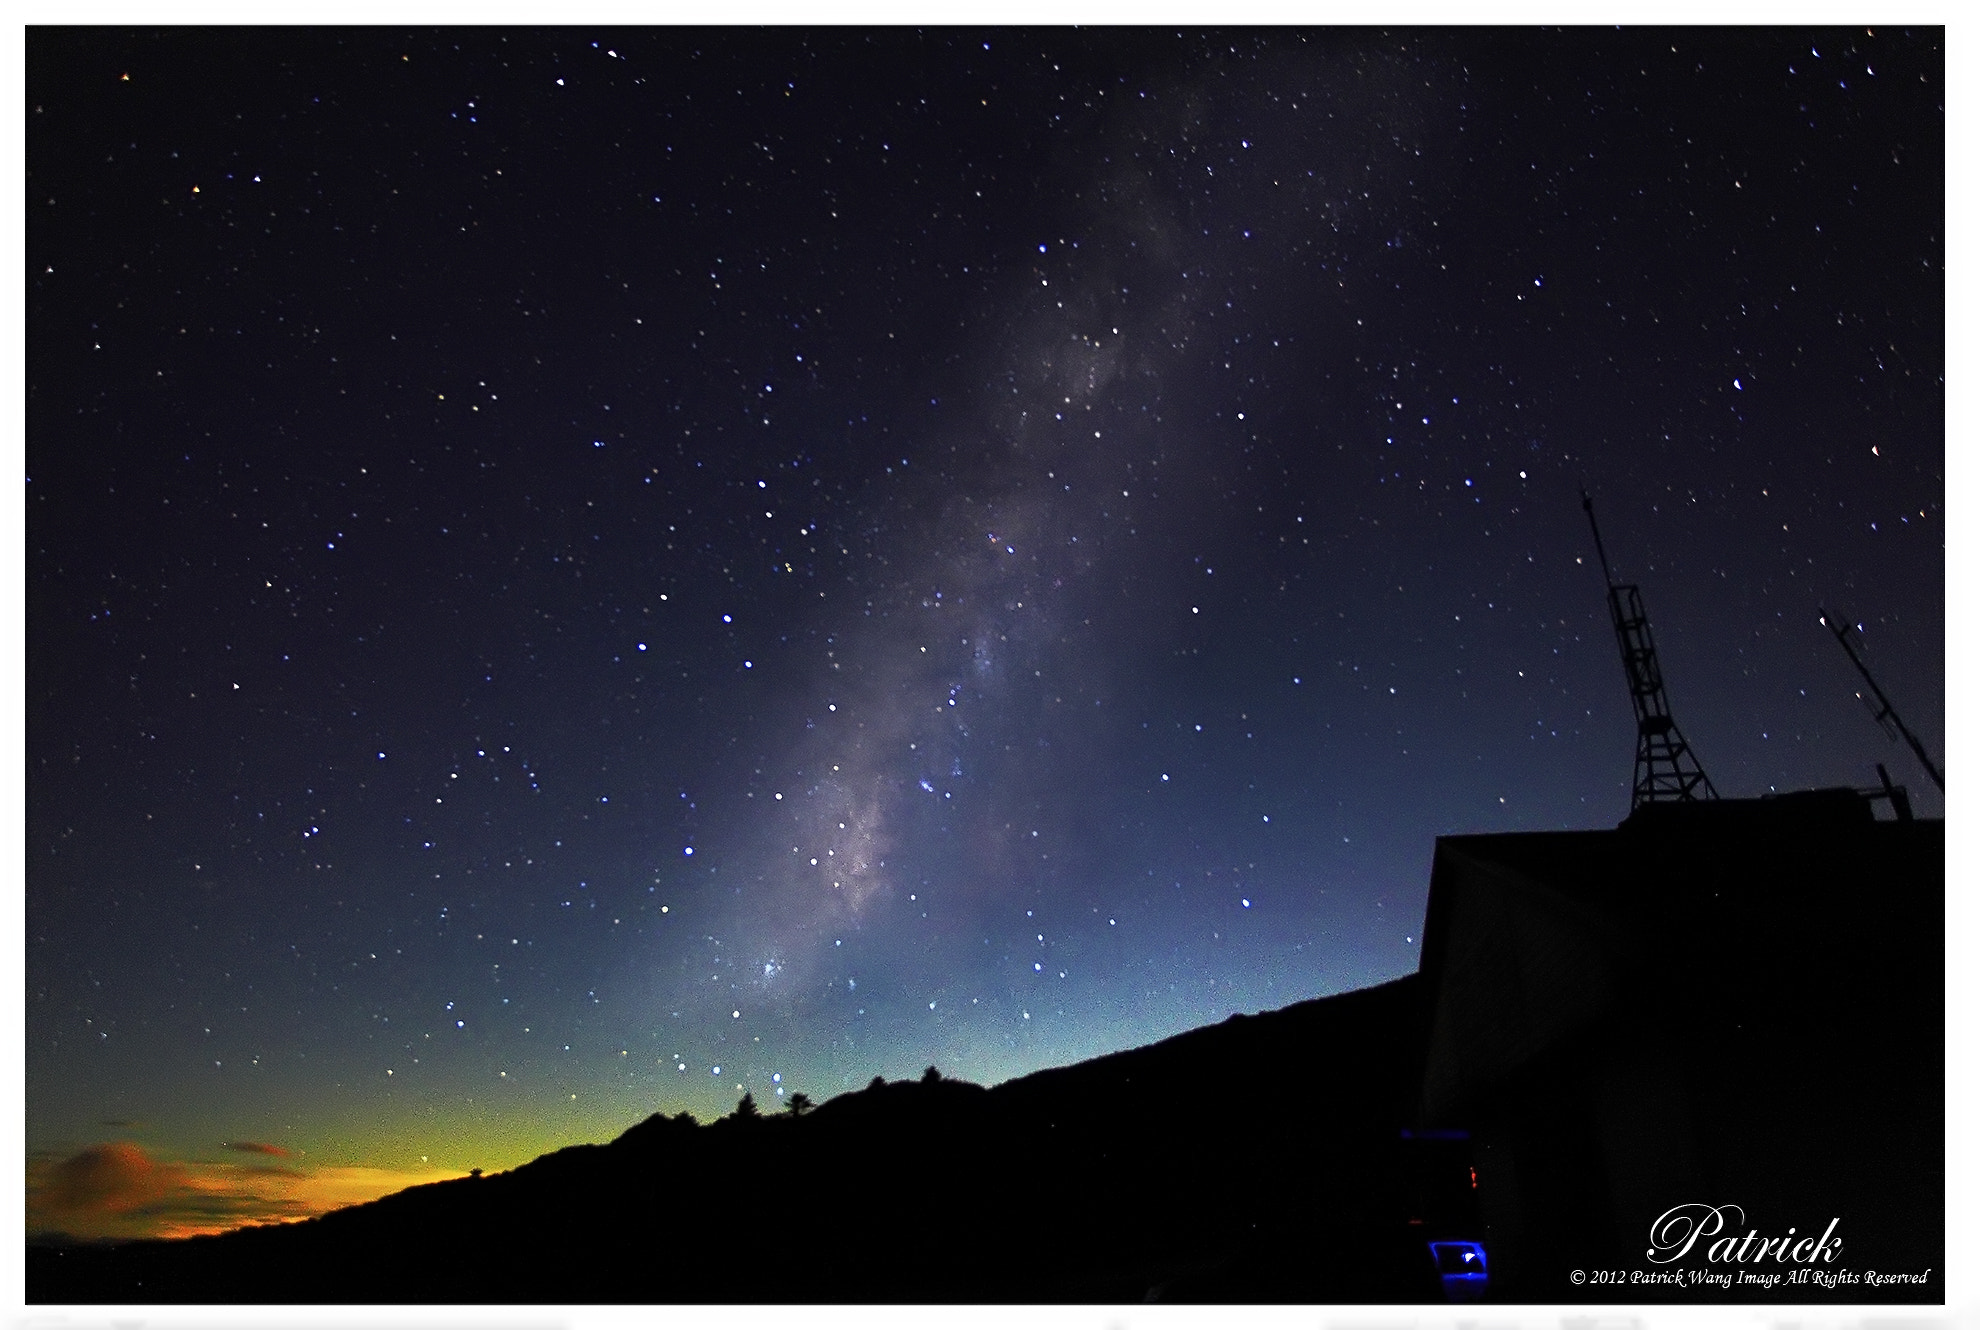 Photograph Galaxy by Patrick Wang on 500px